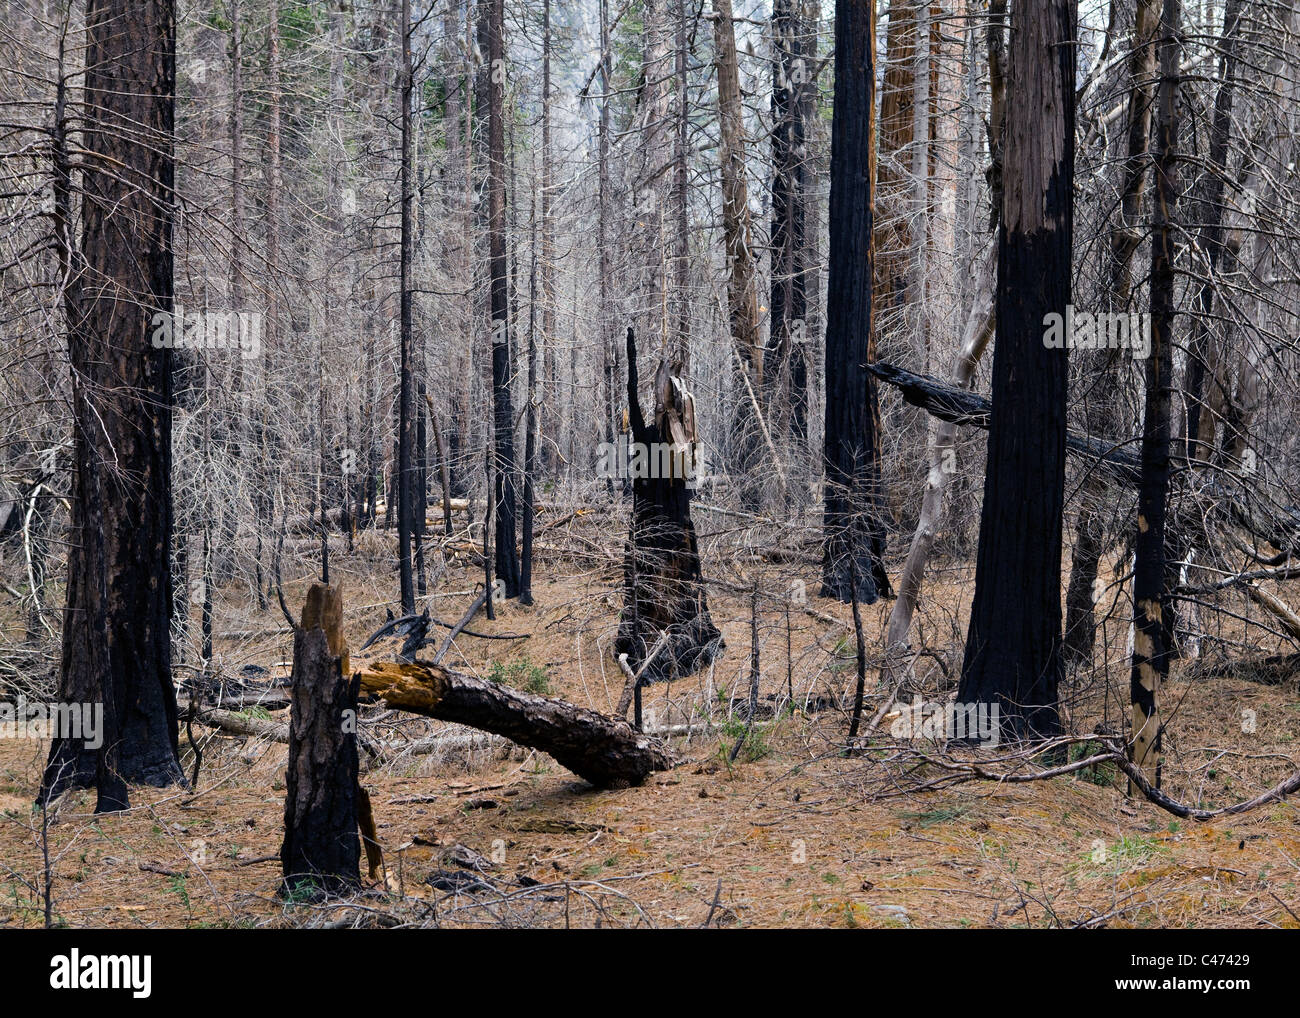 Burned forest of North American Pine trees - Sierra Nevada mountains, California USA - Stock Image